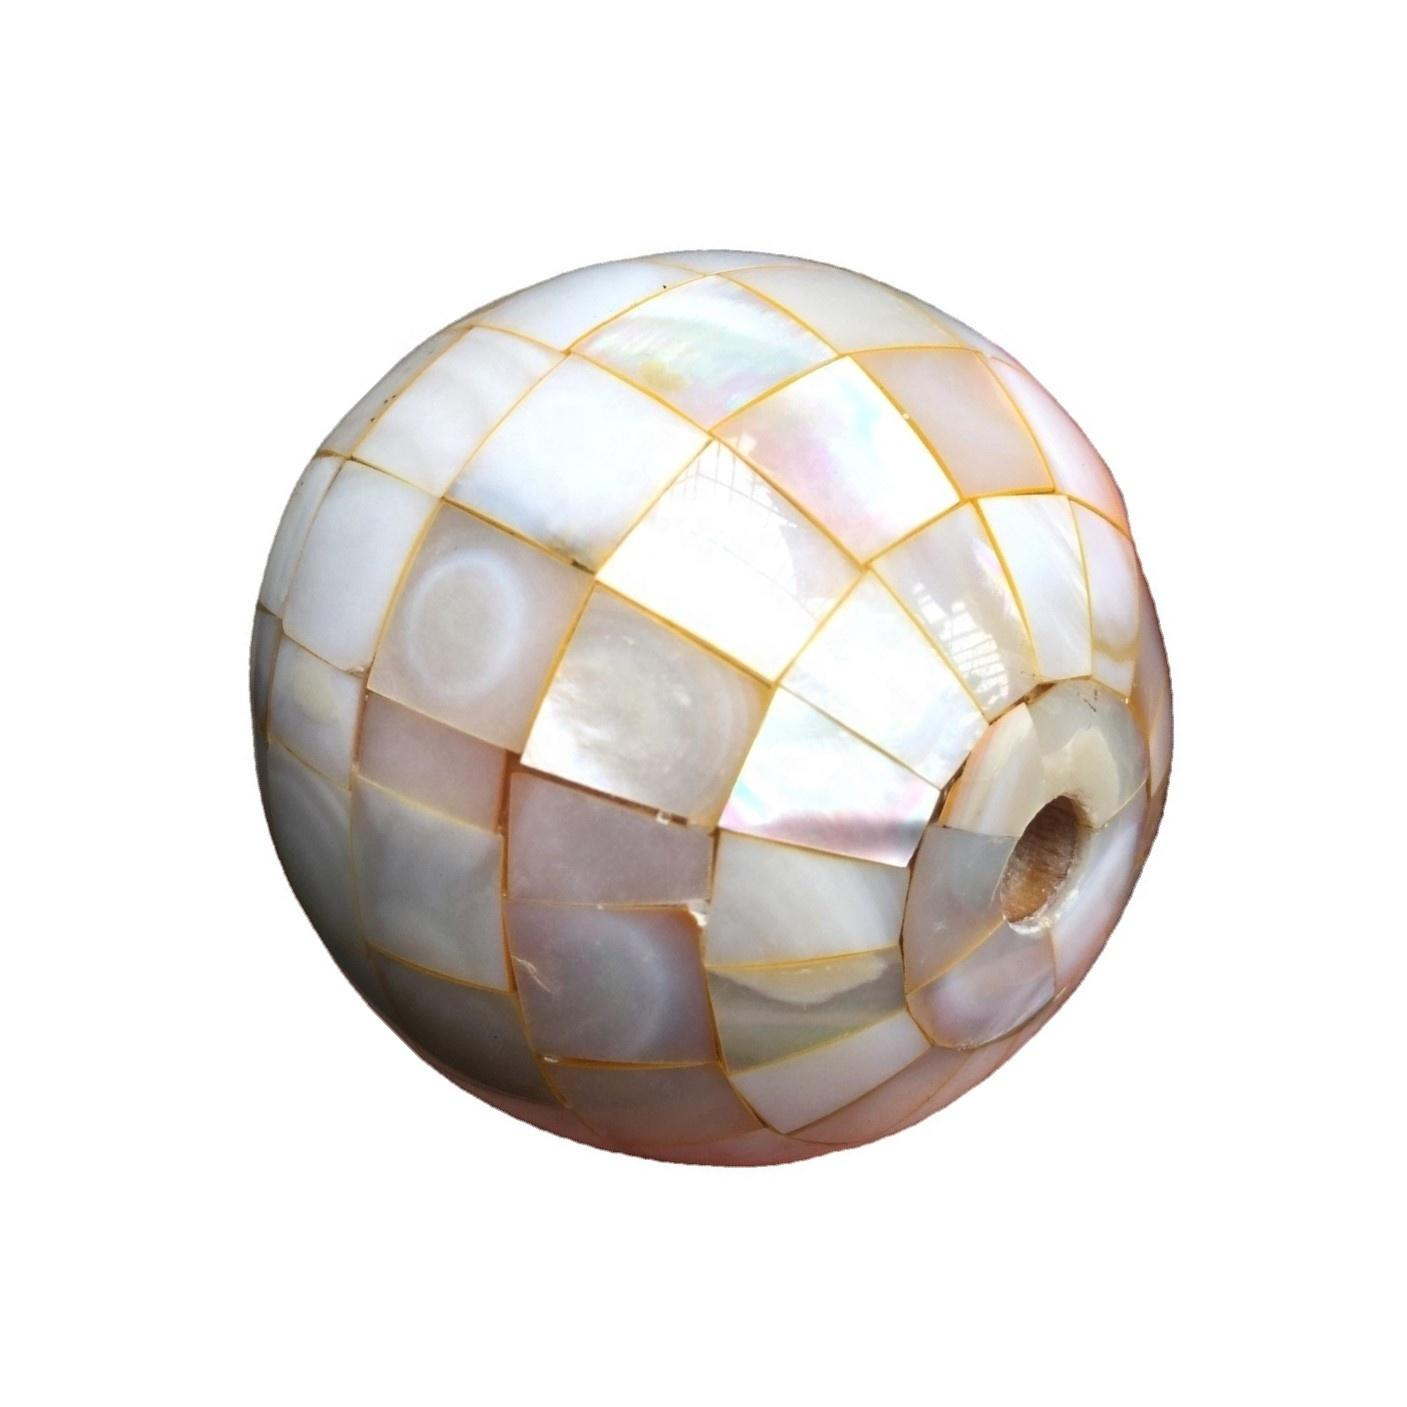 Gemstone mosaic beads mother of pearl shell